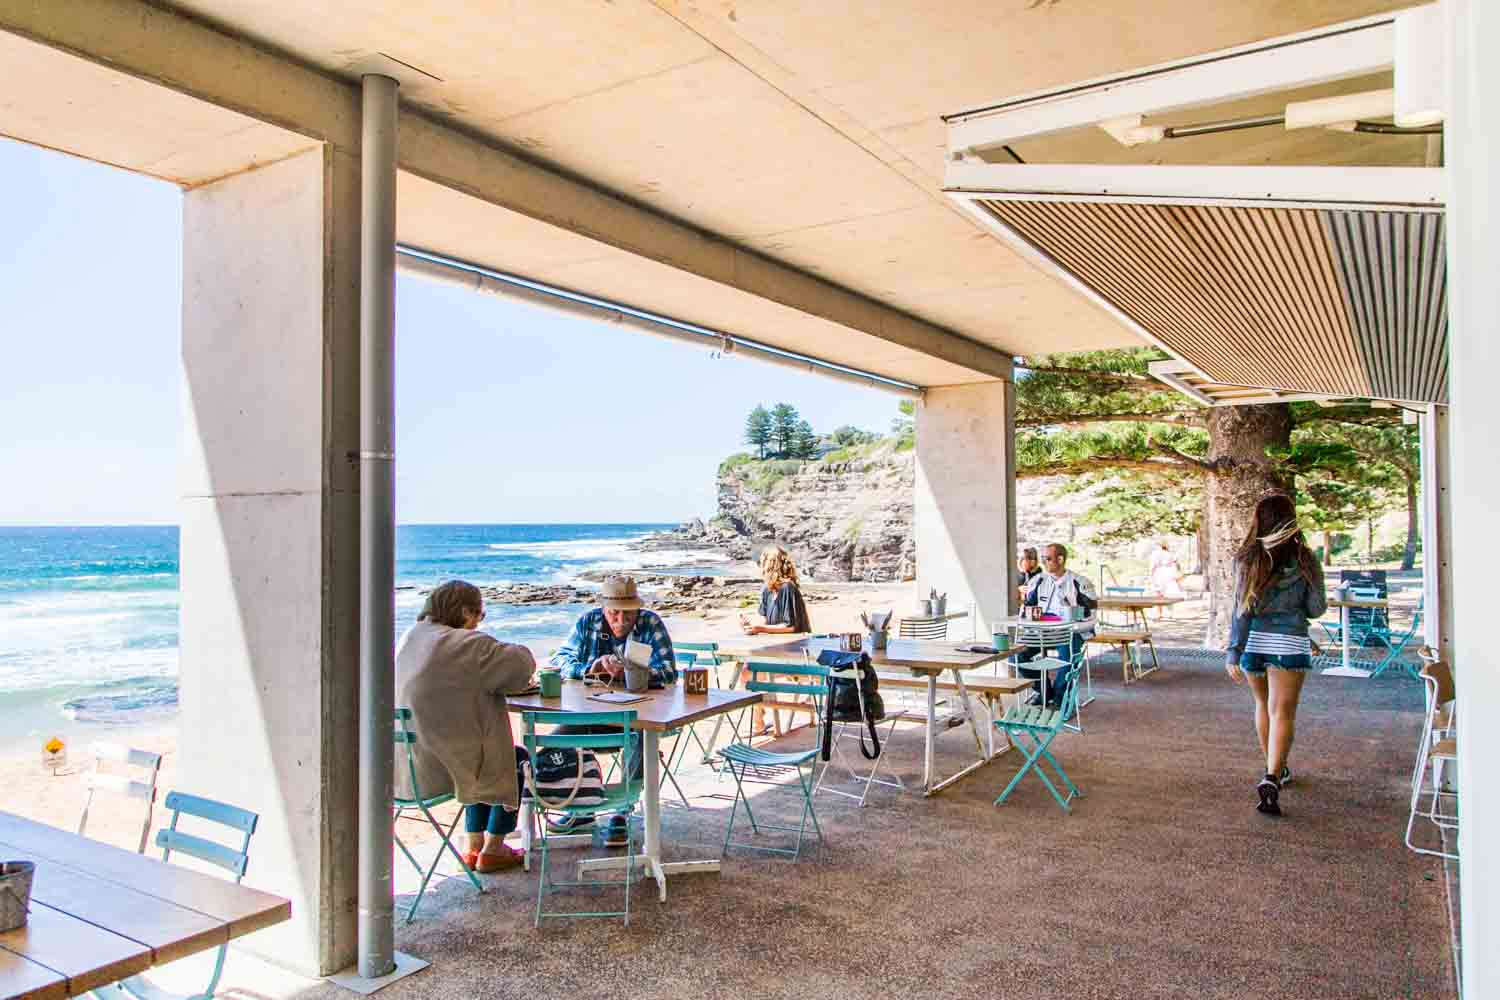 The-Avalon-On-The-Beach-Restaurants-Sydney-Restaurant-Cafe-Cafes-Waterfront-Private-Group-Dining-Best-Top-Good-Casual-Fine-Banner